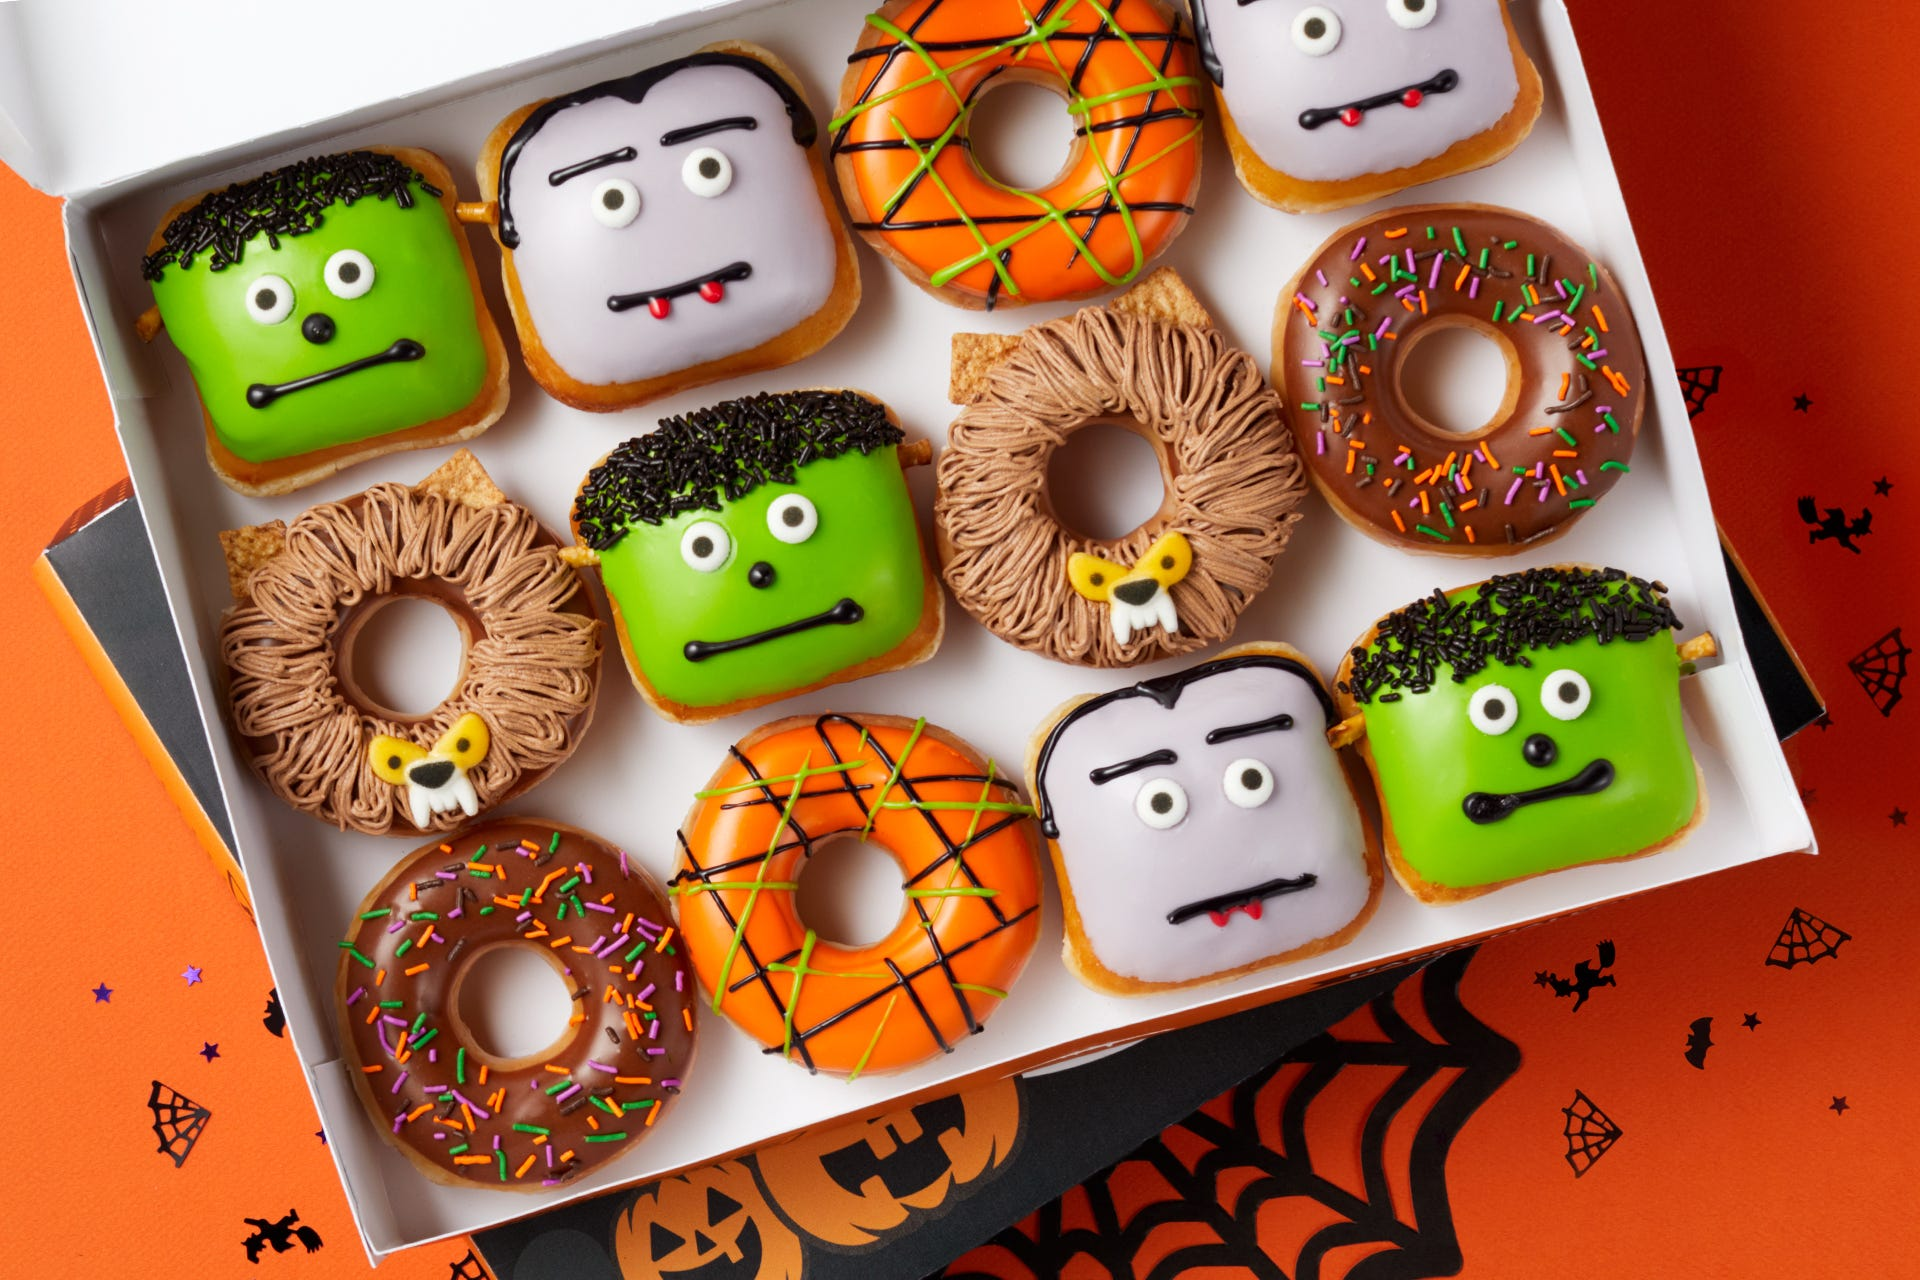 Halloween 2020: Lowe's to have early curbside trick-or-treating while Krispy Kreme to have free donuts on holiday